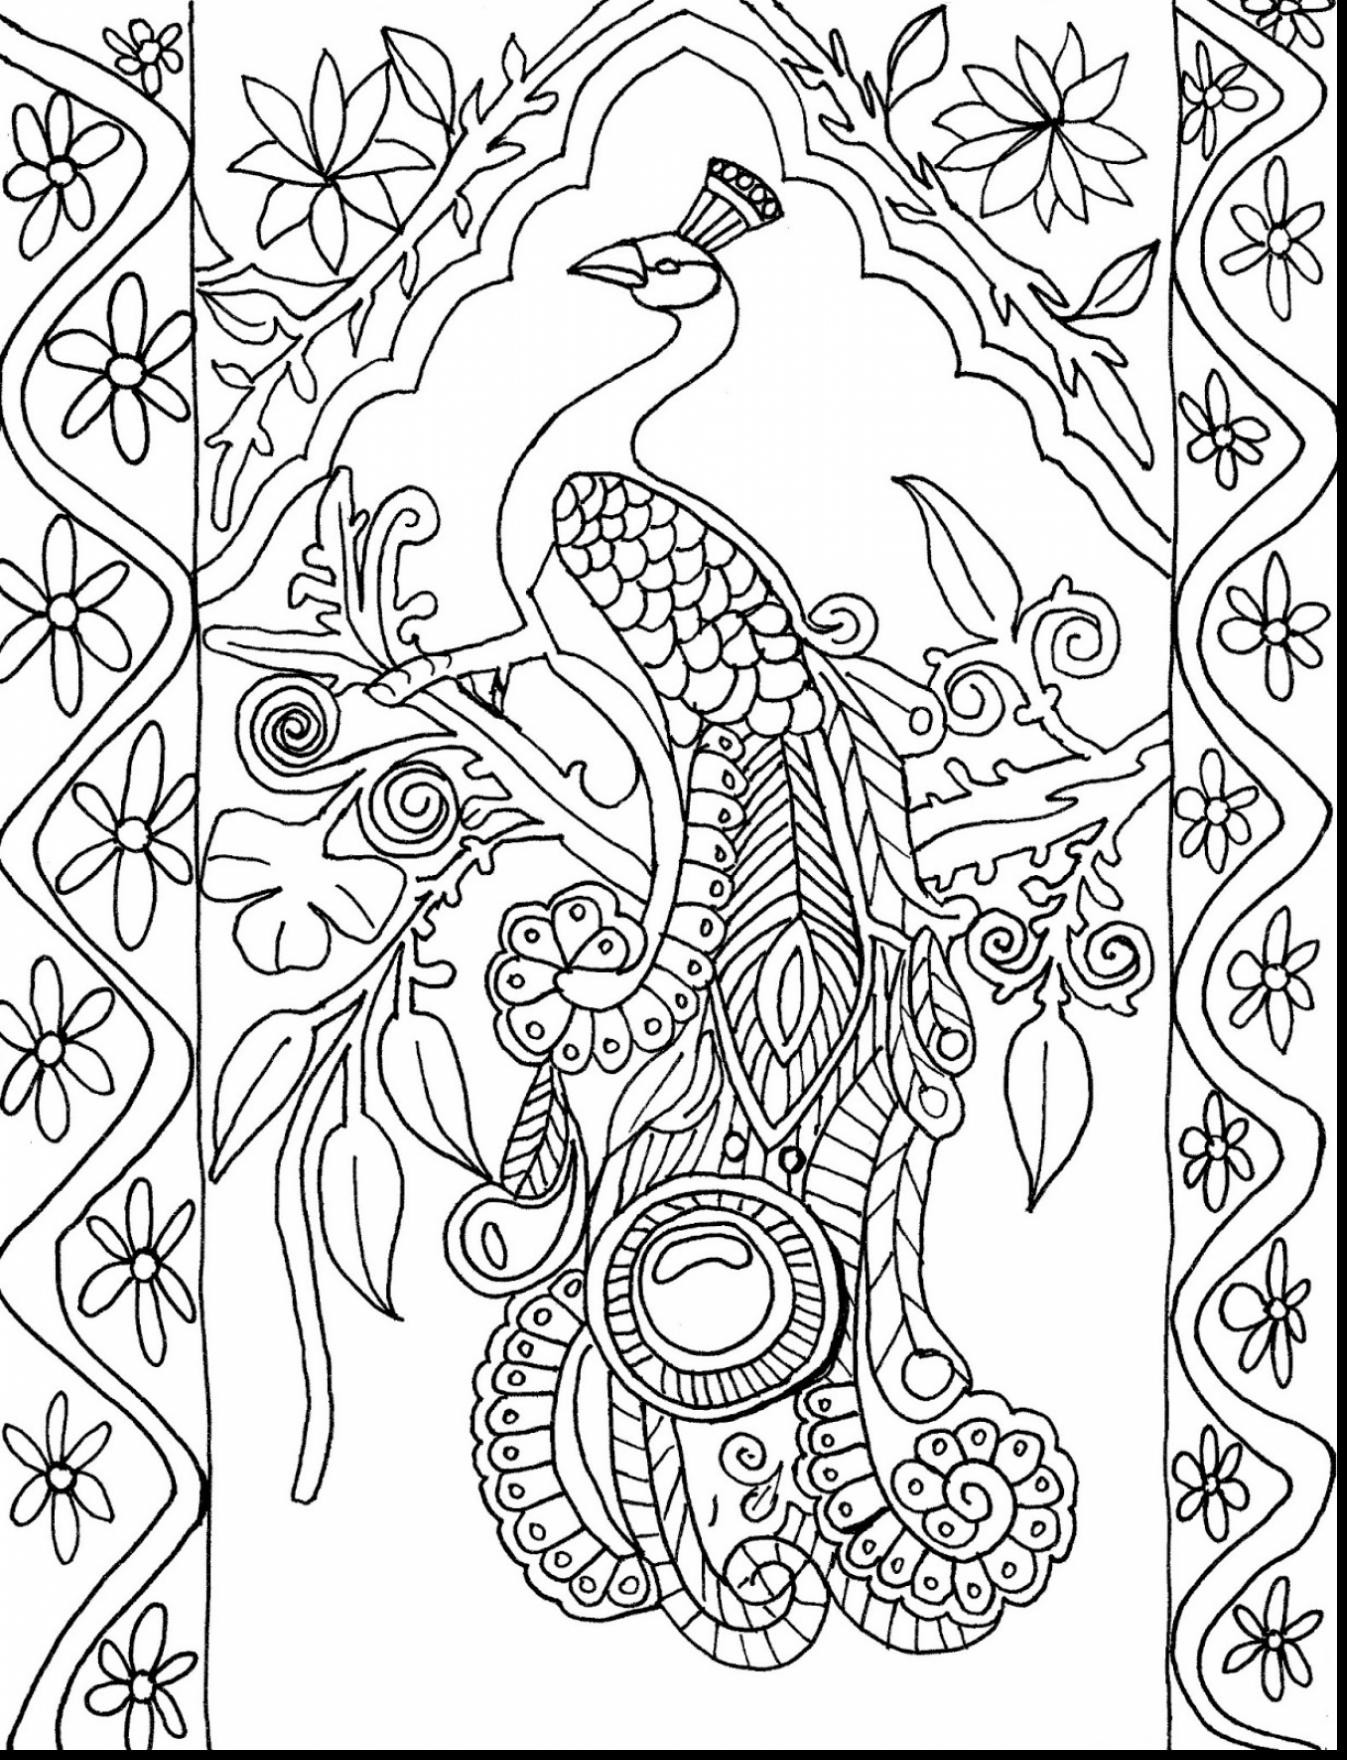 1347x1760 New Free Printable Peacock Coloring Pages For Adults Fresh